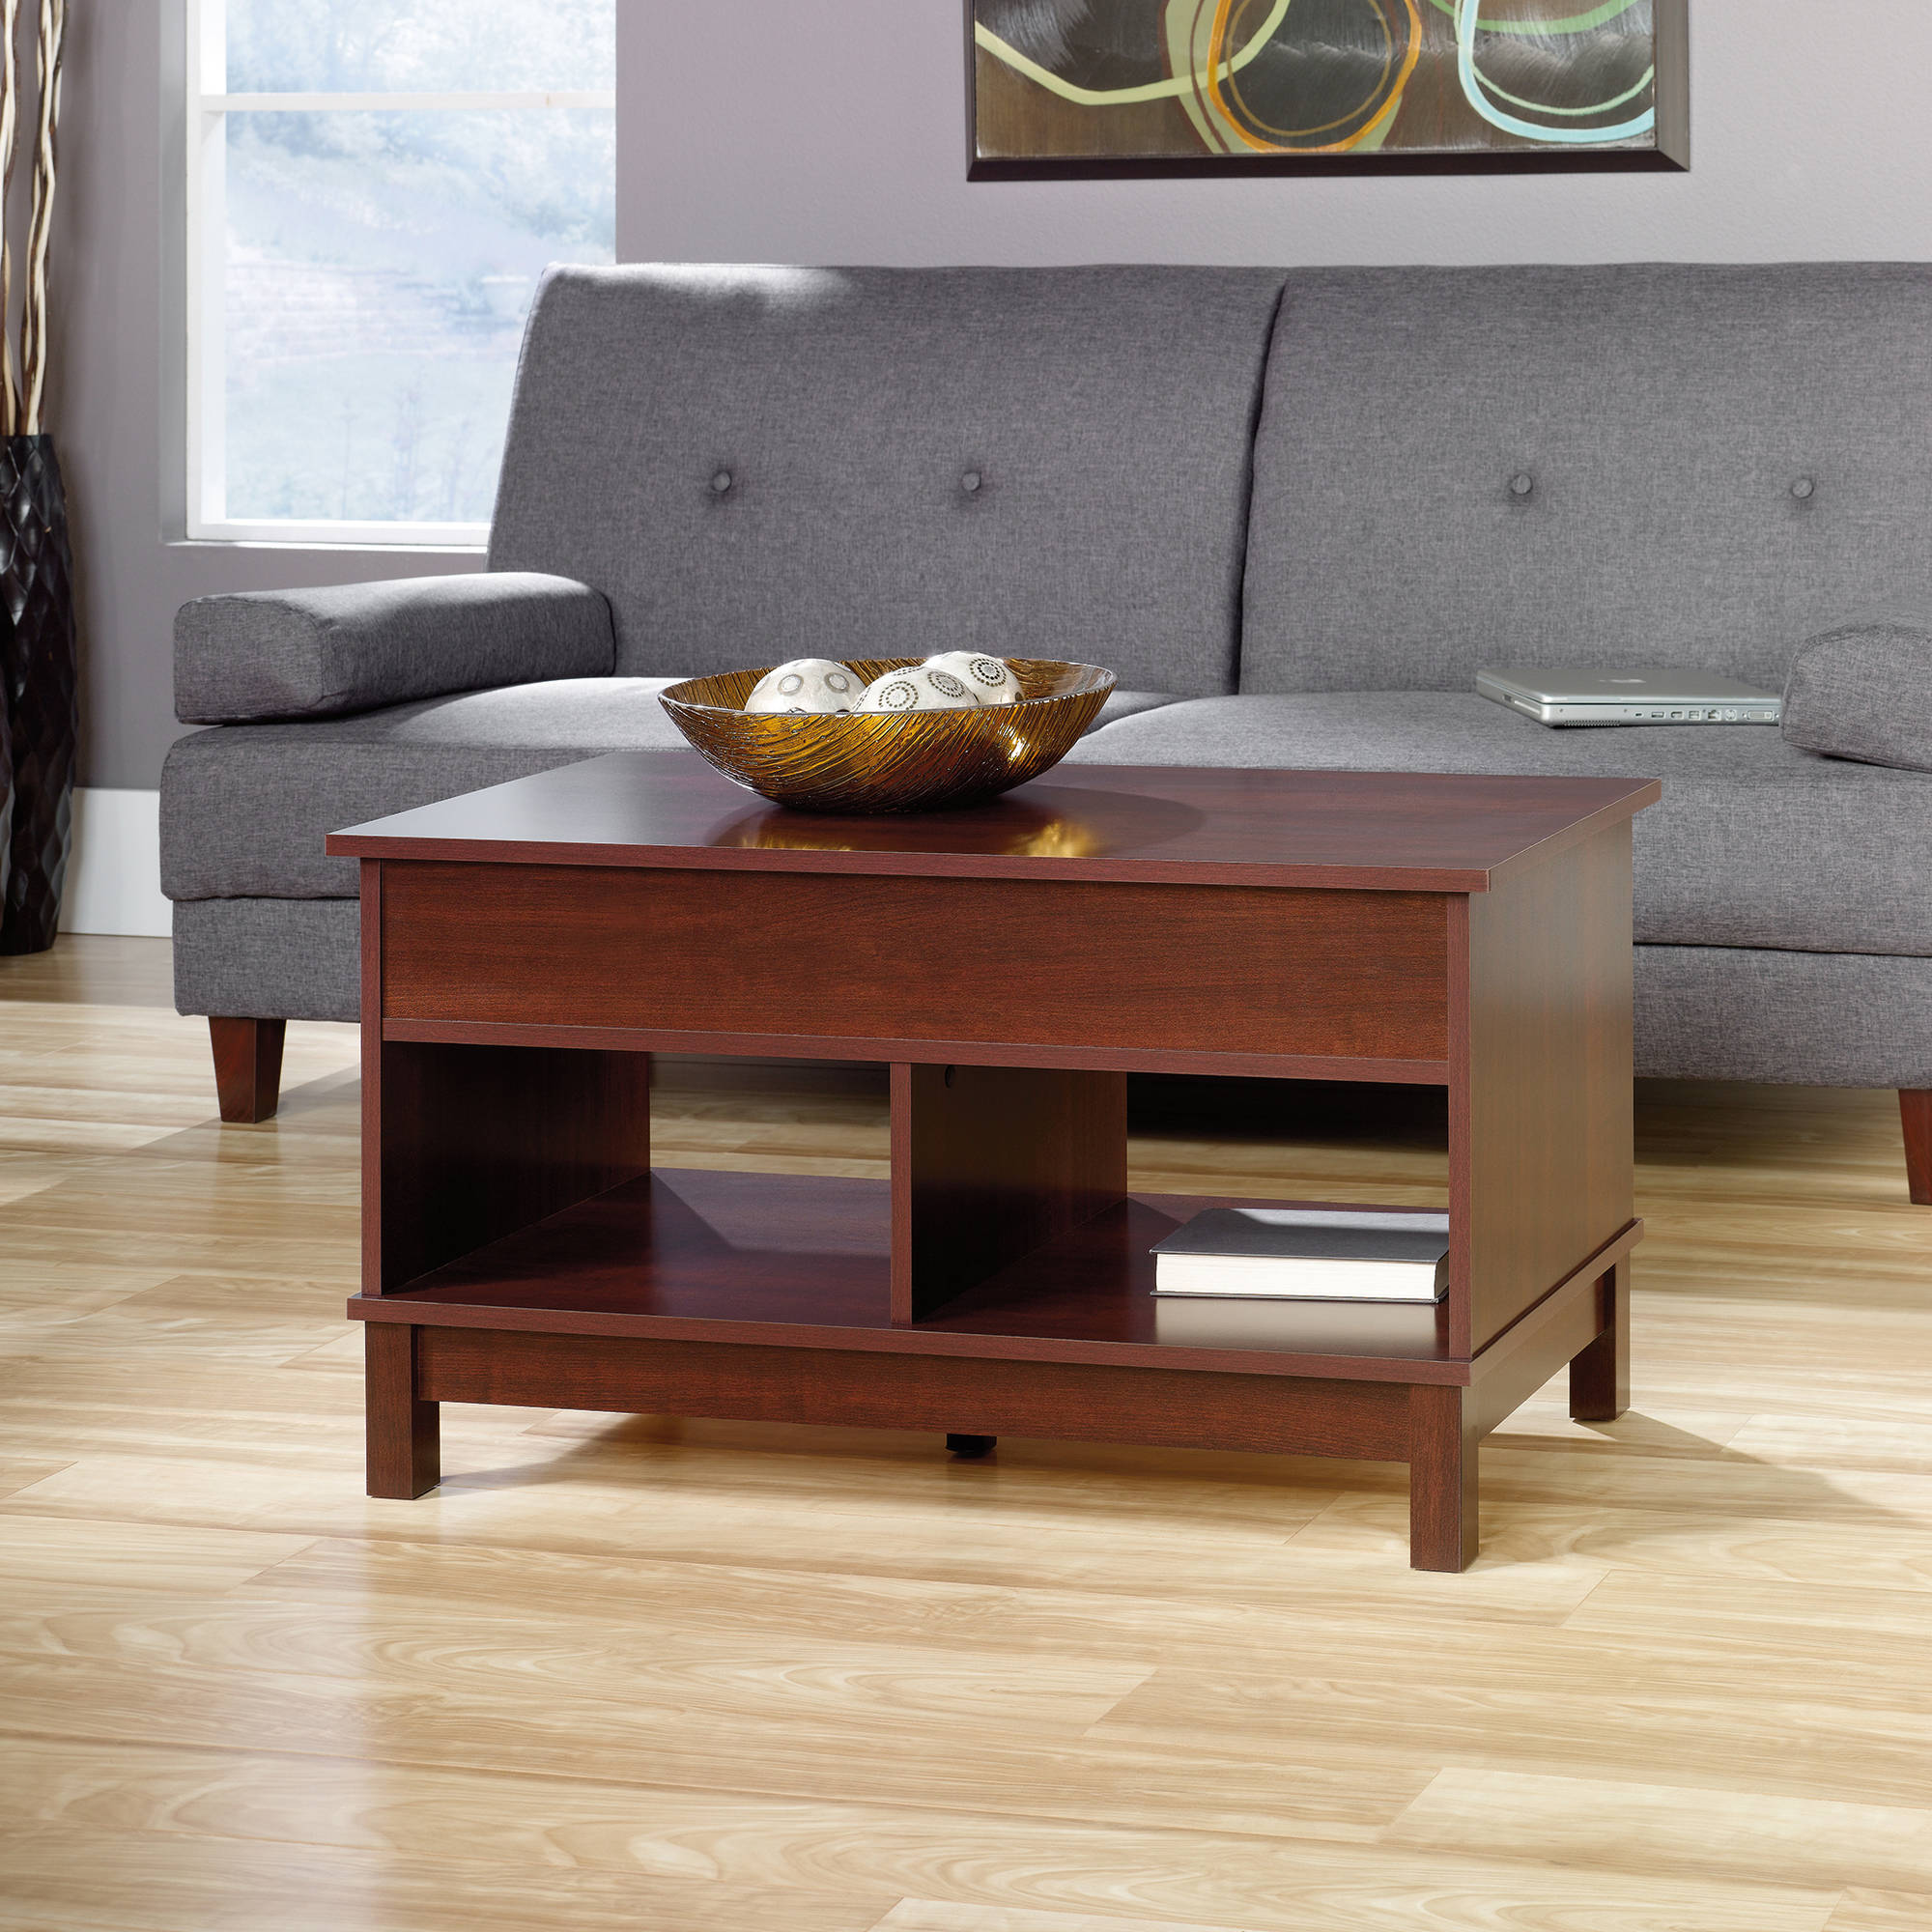 Bush Furniture Buena Vista Coffee Table Walmart